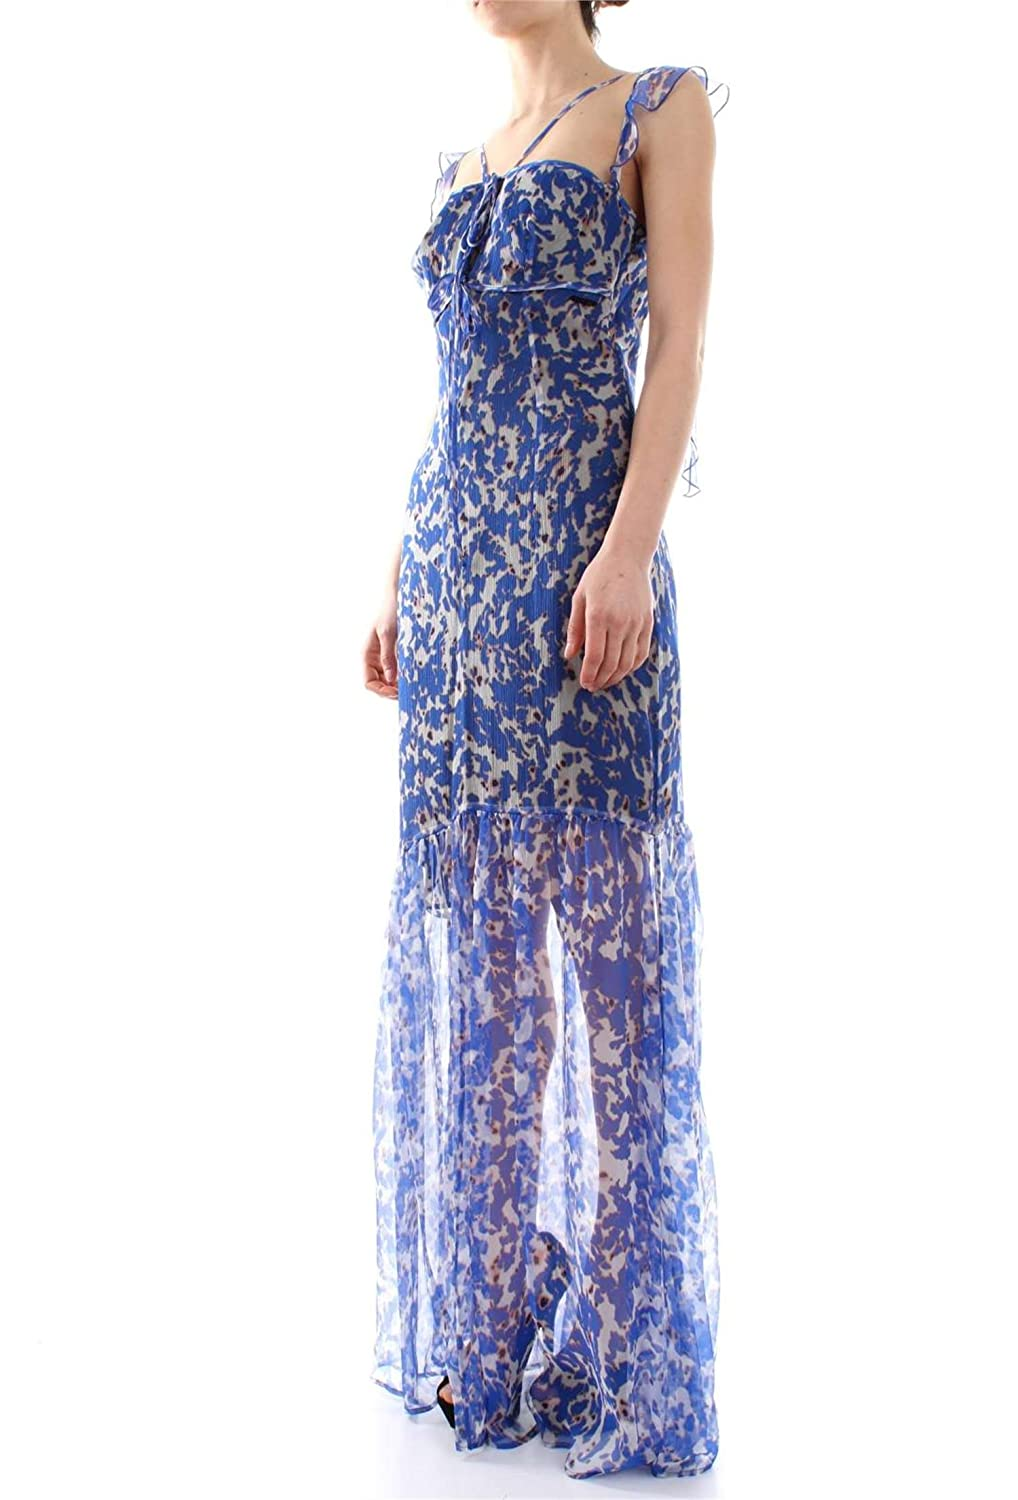 By Marciano Blu Abito 72g739 8328z 44Amazon Donna it Guess WEIDHY29